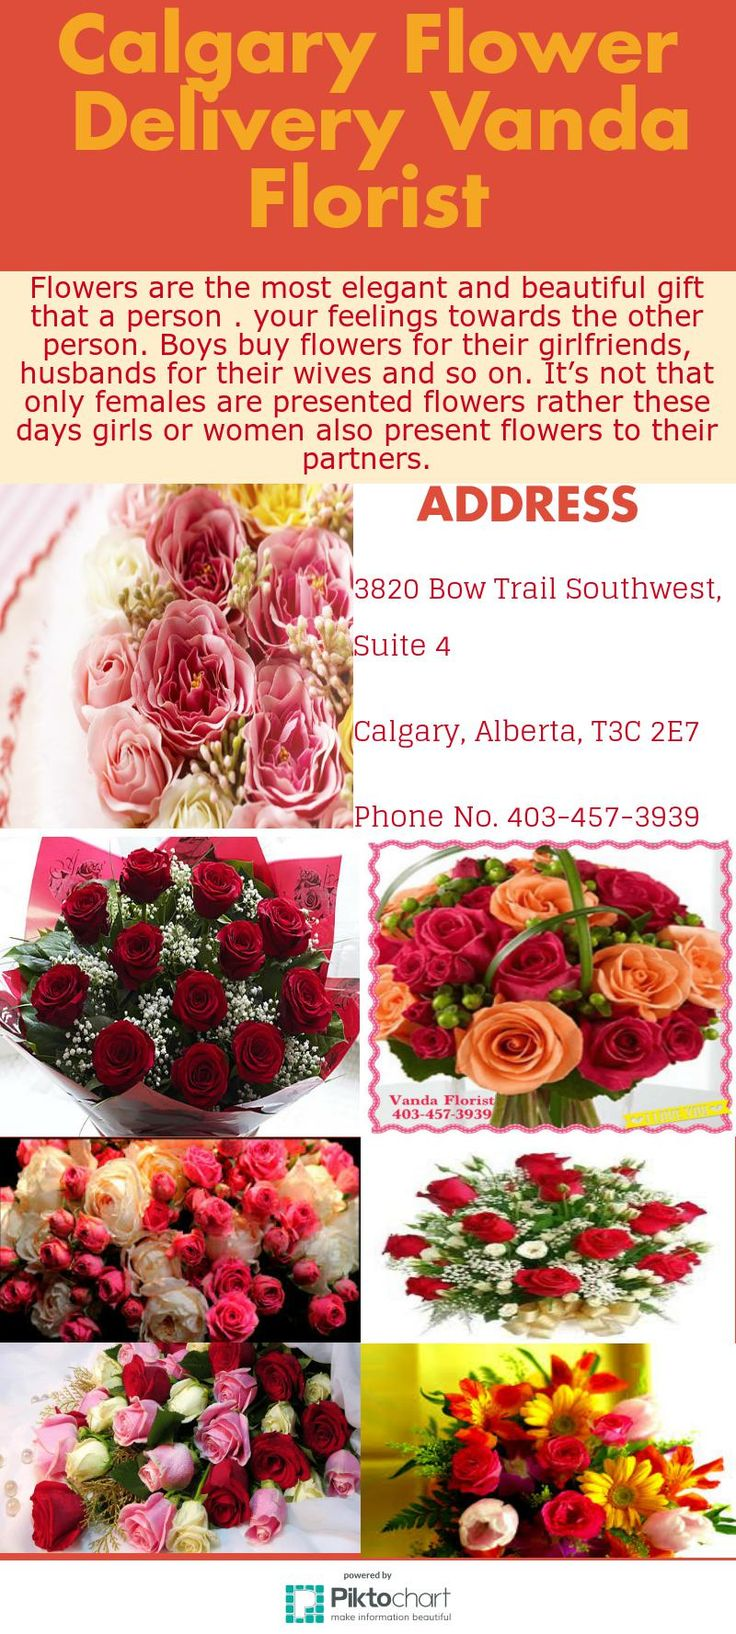 10 best christmas flower delivery shop in calgary images on pinterest order flowers online with same day flower delivery in calgary from vanda floristovides fresh flowers for occasions like wedding birthday izmirmasajfo Image collections